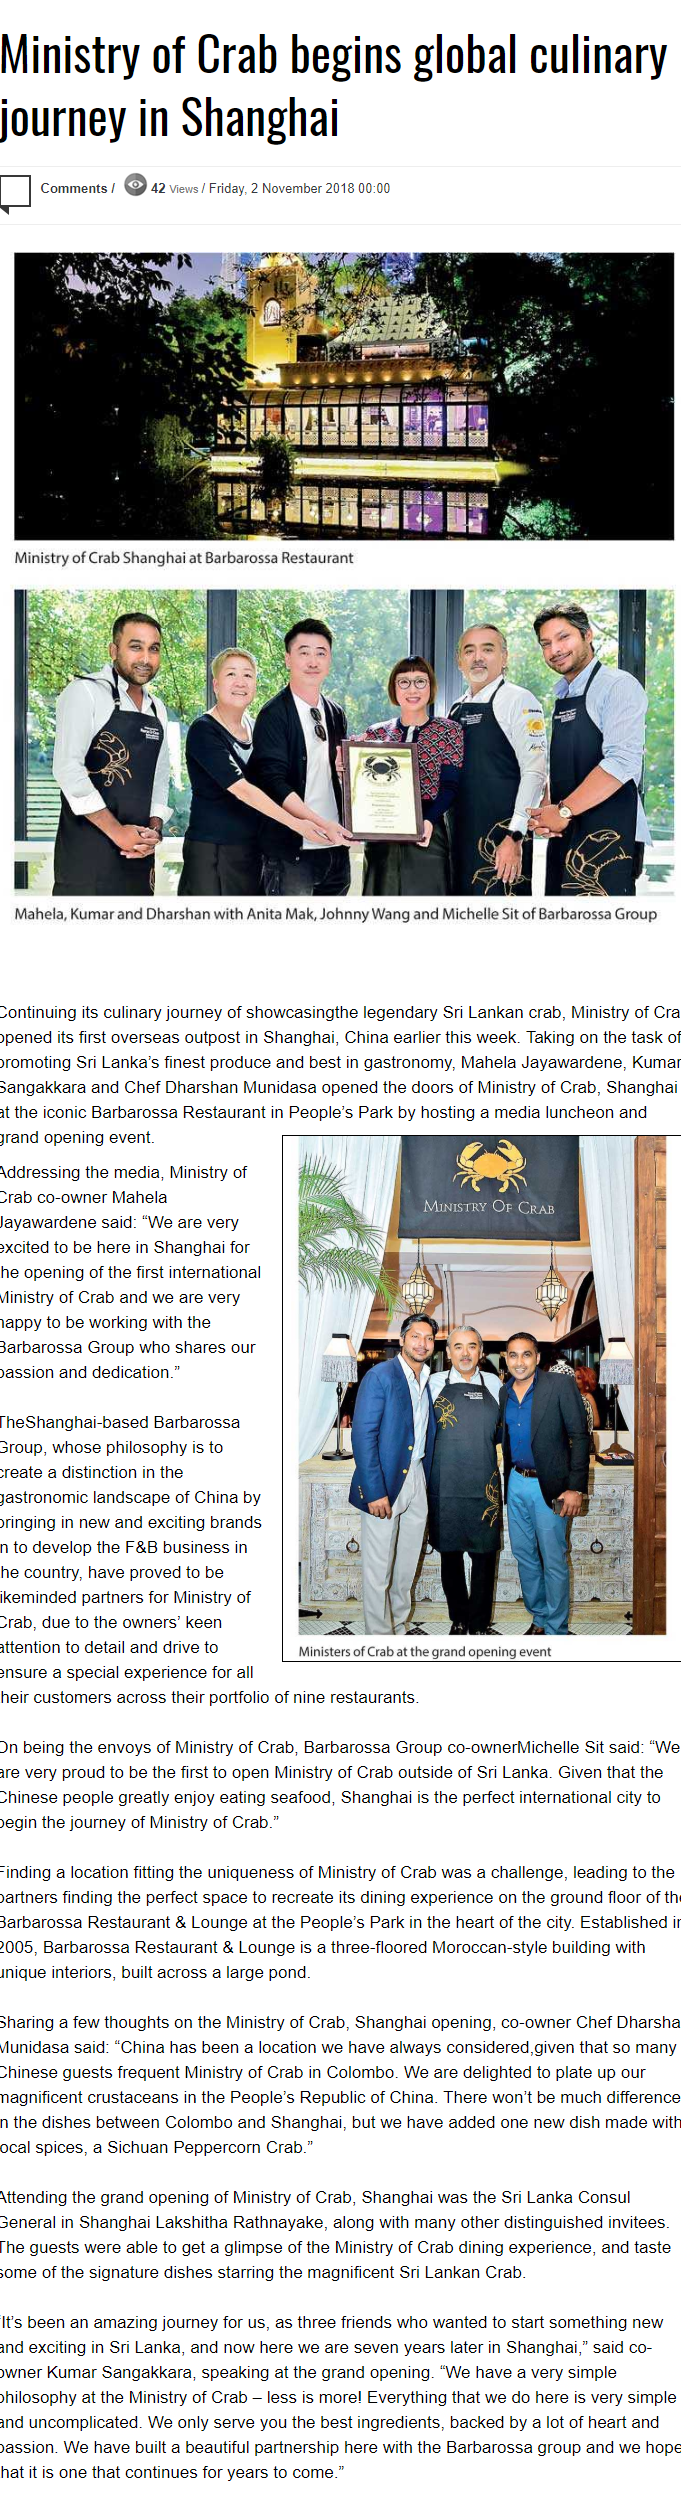 Ministry Of Crab Begins Global Culinary Journey In Shanghai